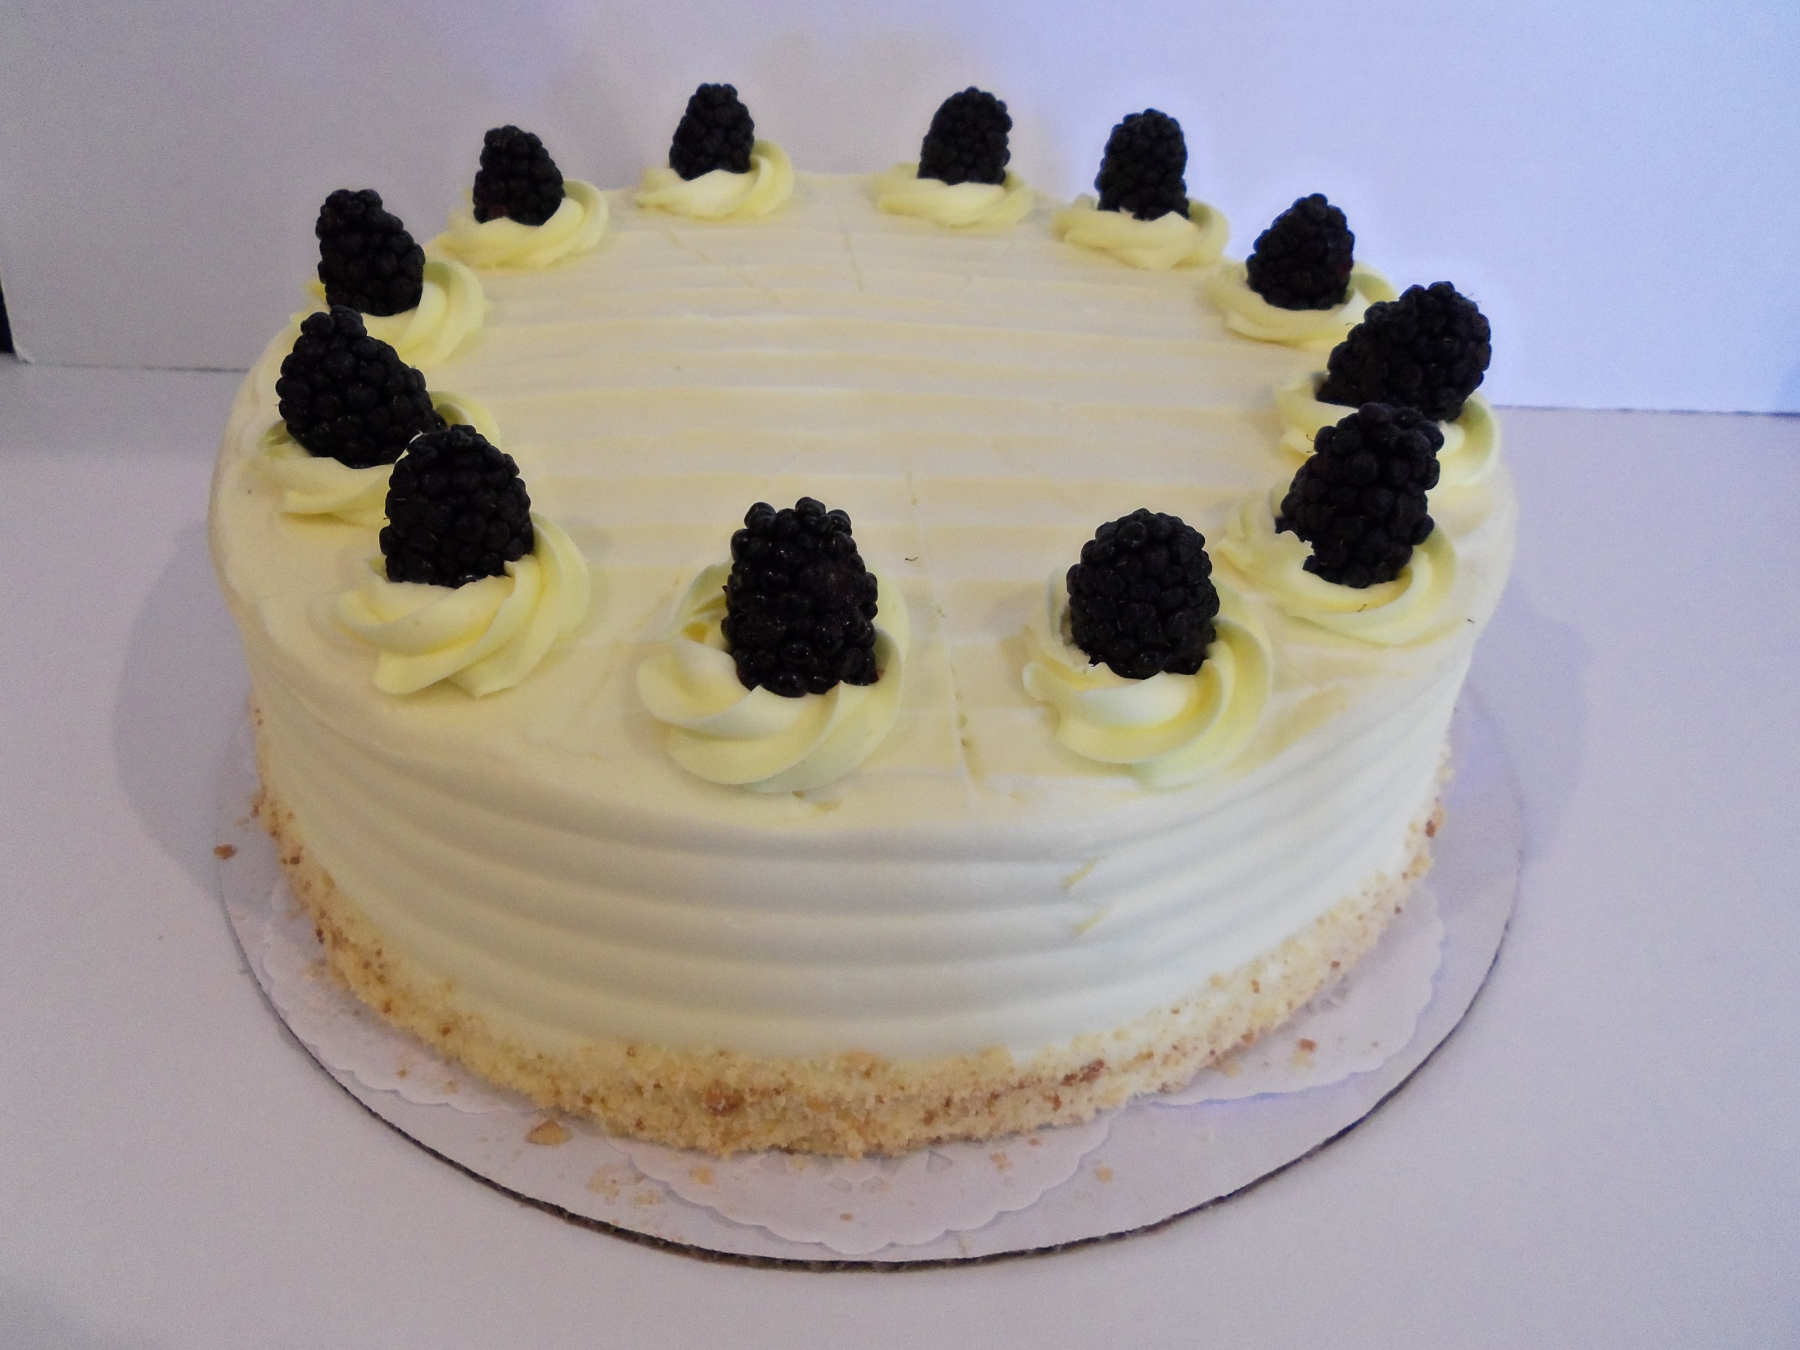 Blackberry citrus cake